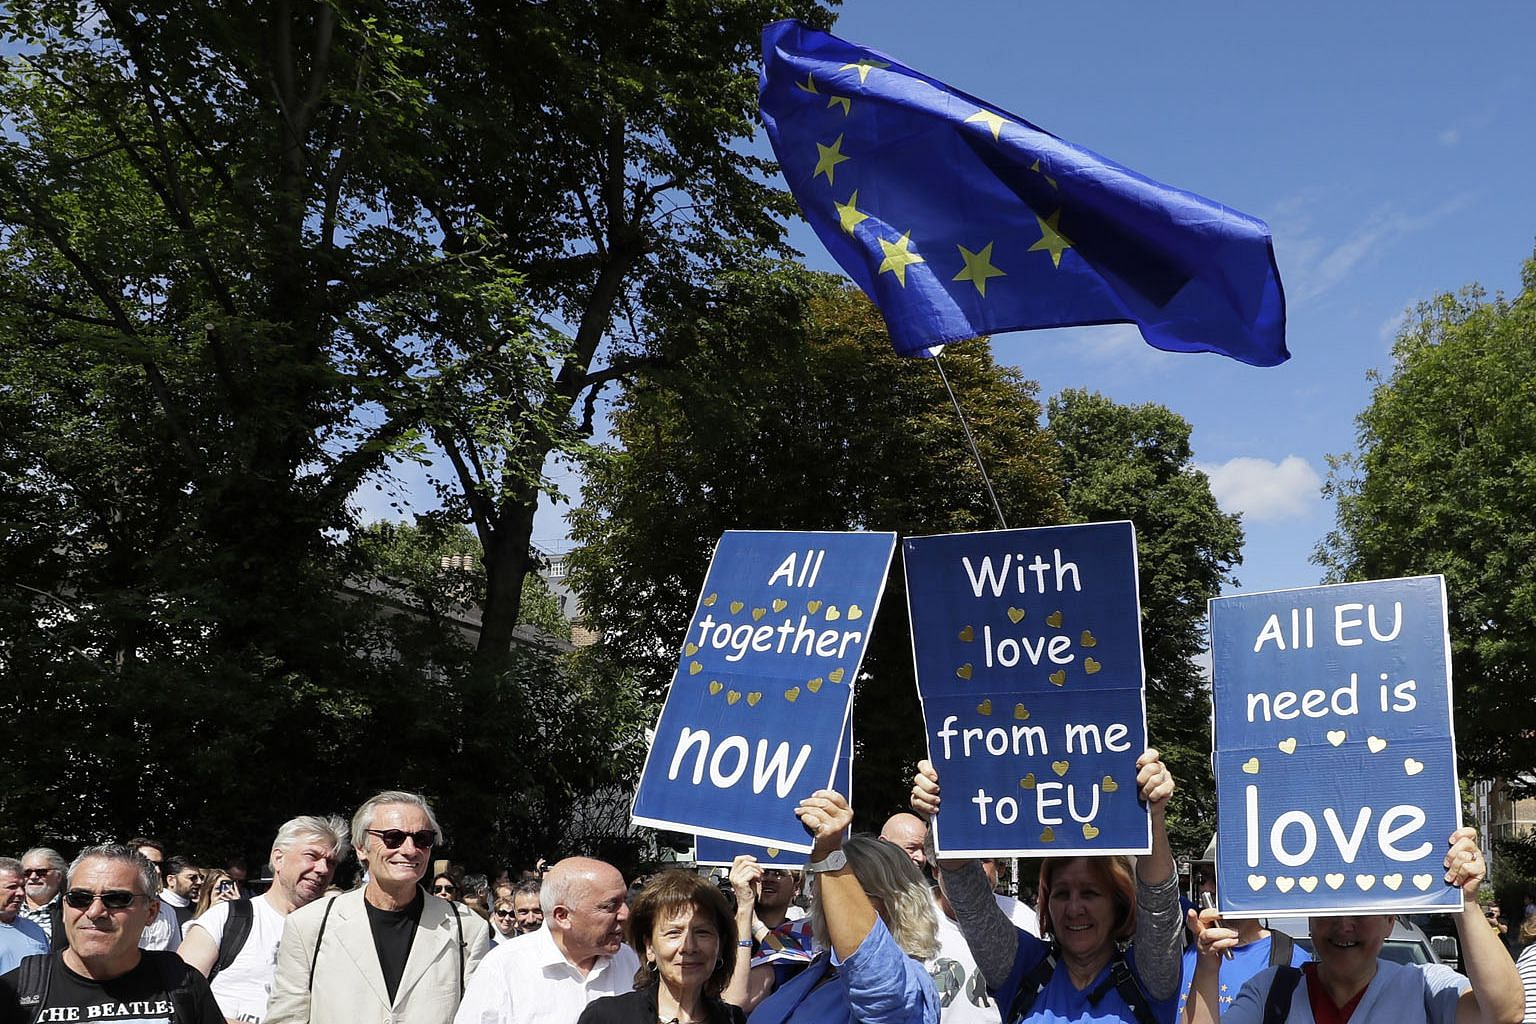 Anti-Brexit demonstrators joining Beatles fans in Abbey Road, London on Thursday, on the 50th anniversary of The Beatles crossing the street that was immortalised on the cover of their album Abbey Road.